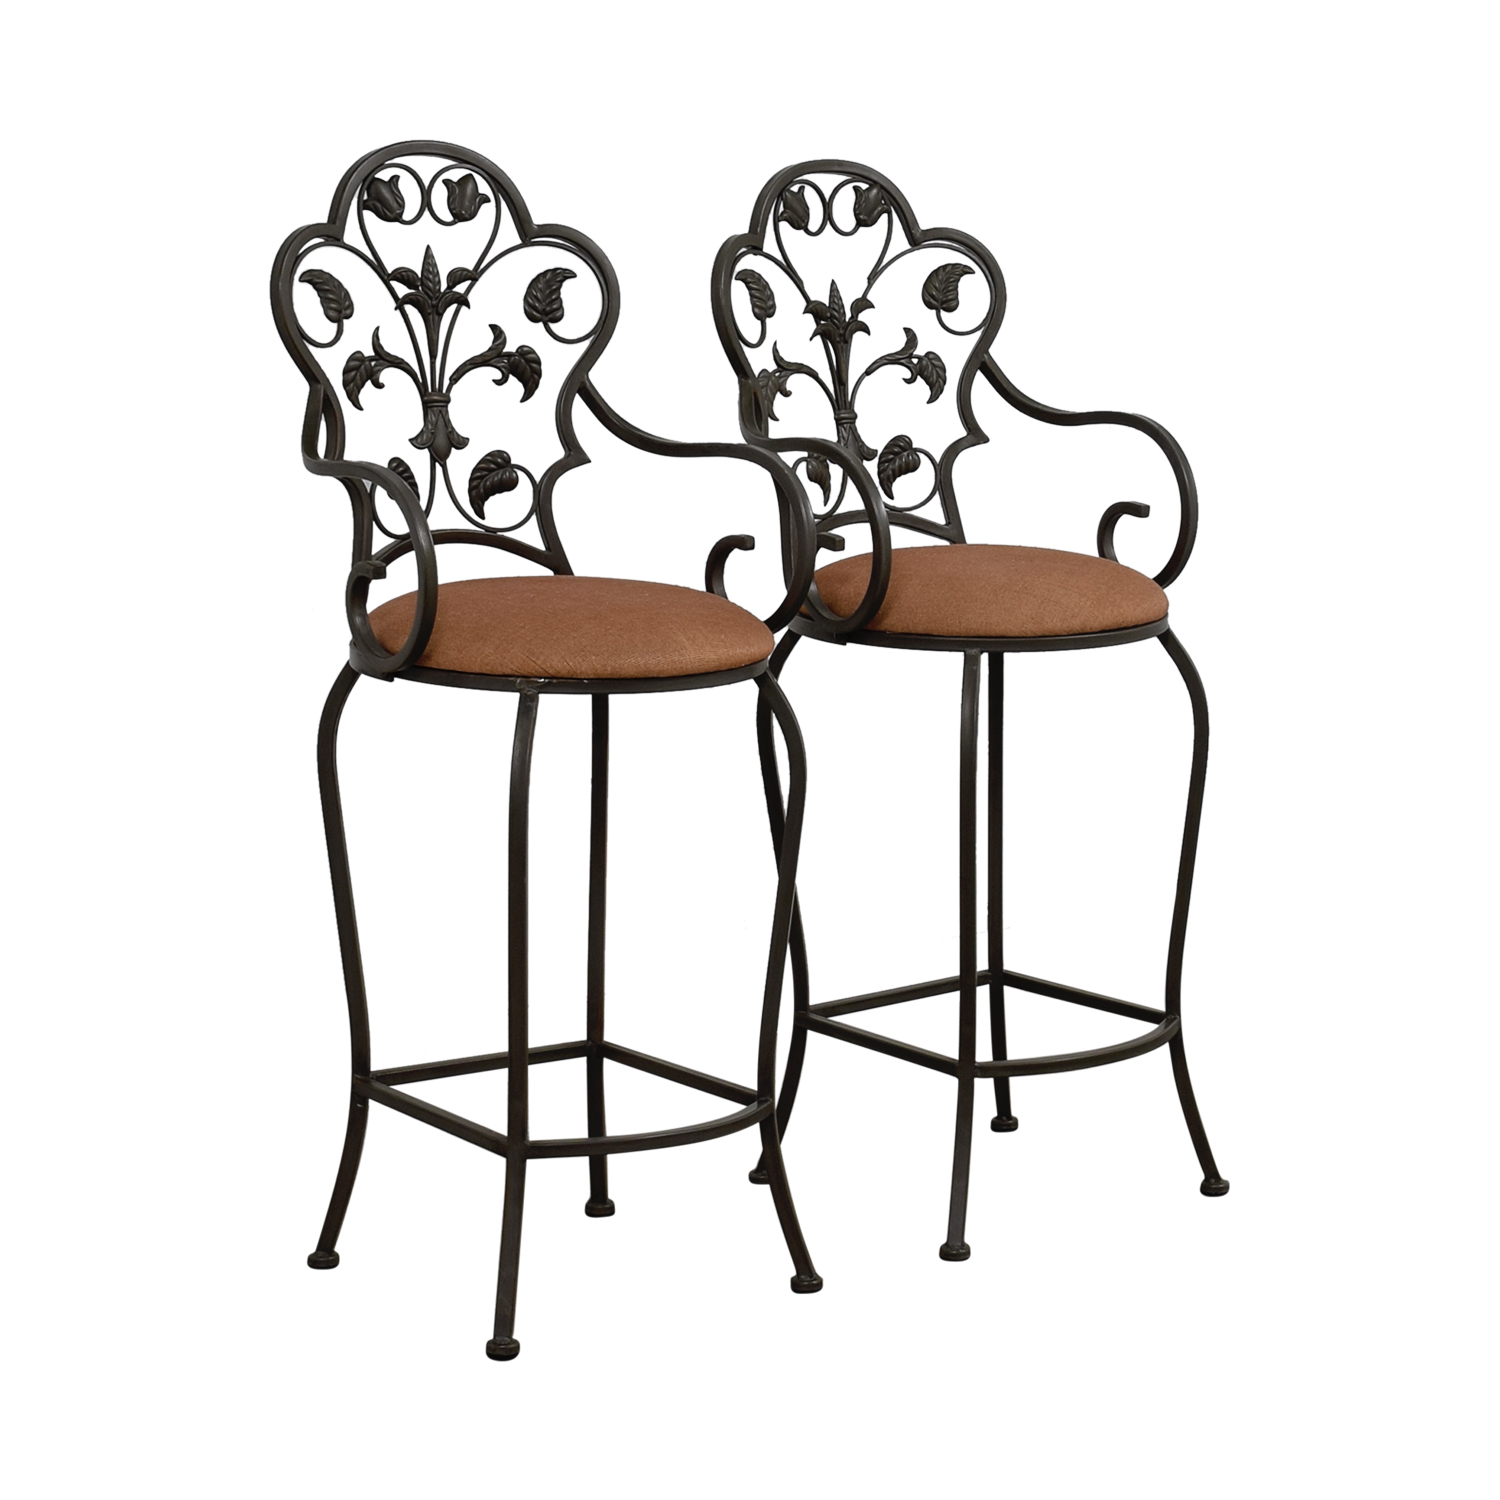 70 Off Scrolled Metal Folding Back Bar Stools Chairs